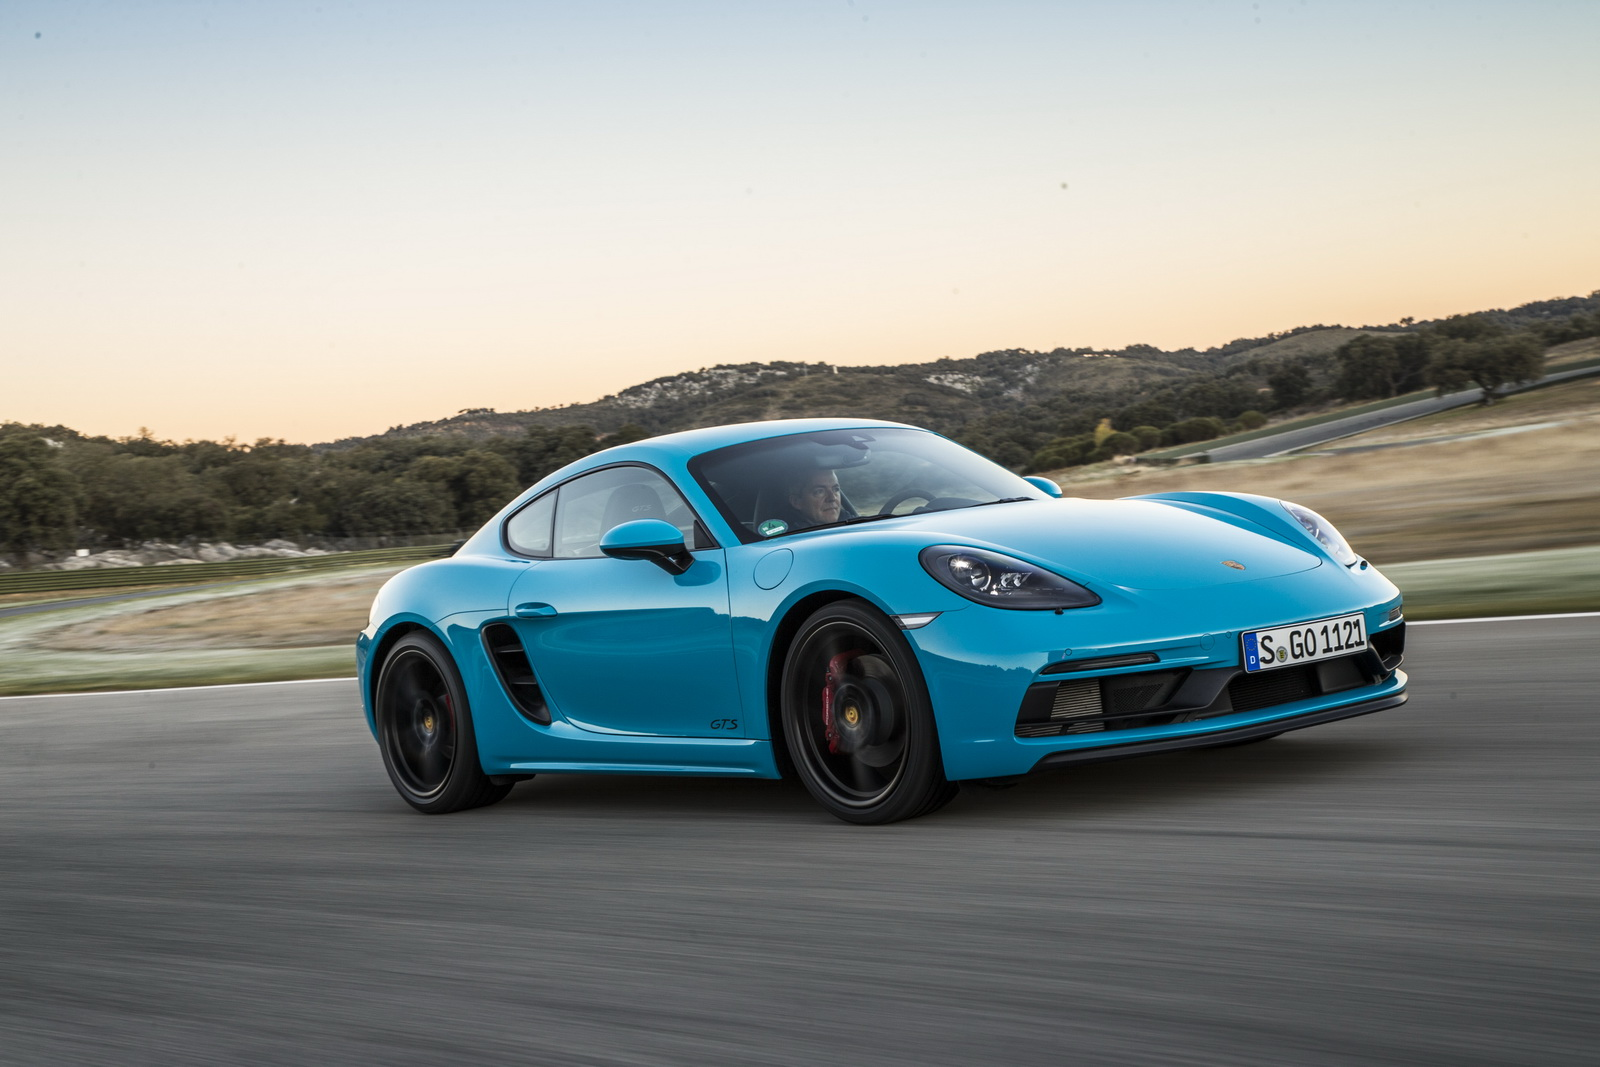 new porsche 718 cayman and boxster gts detailed in 85 pics carscoops. Black Bedroom Furniture Sets. Home Design Ideas